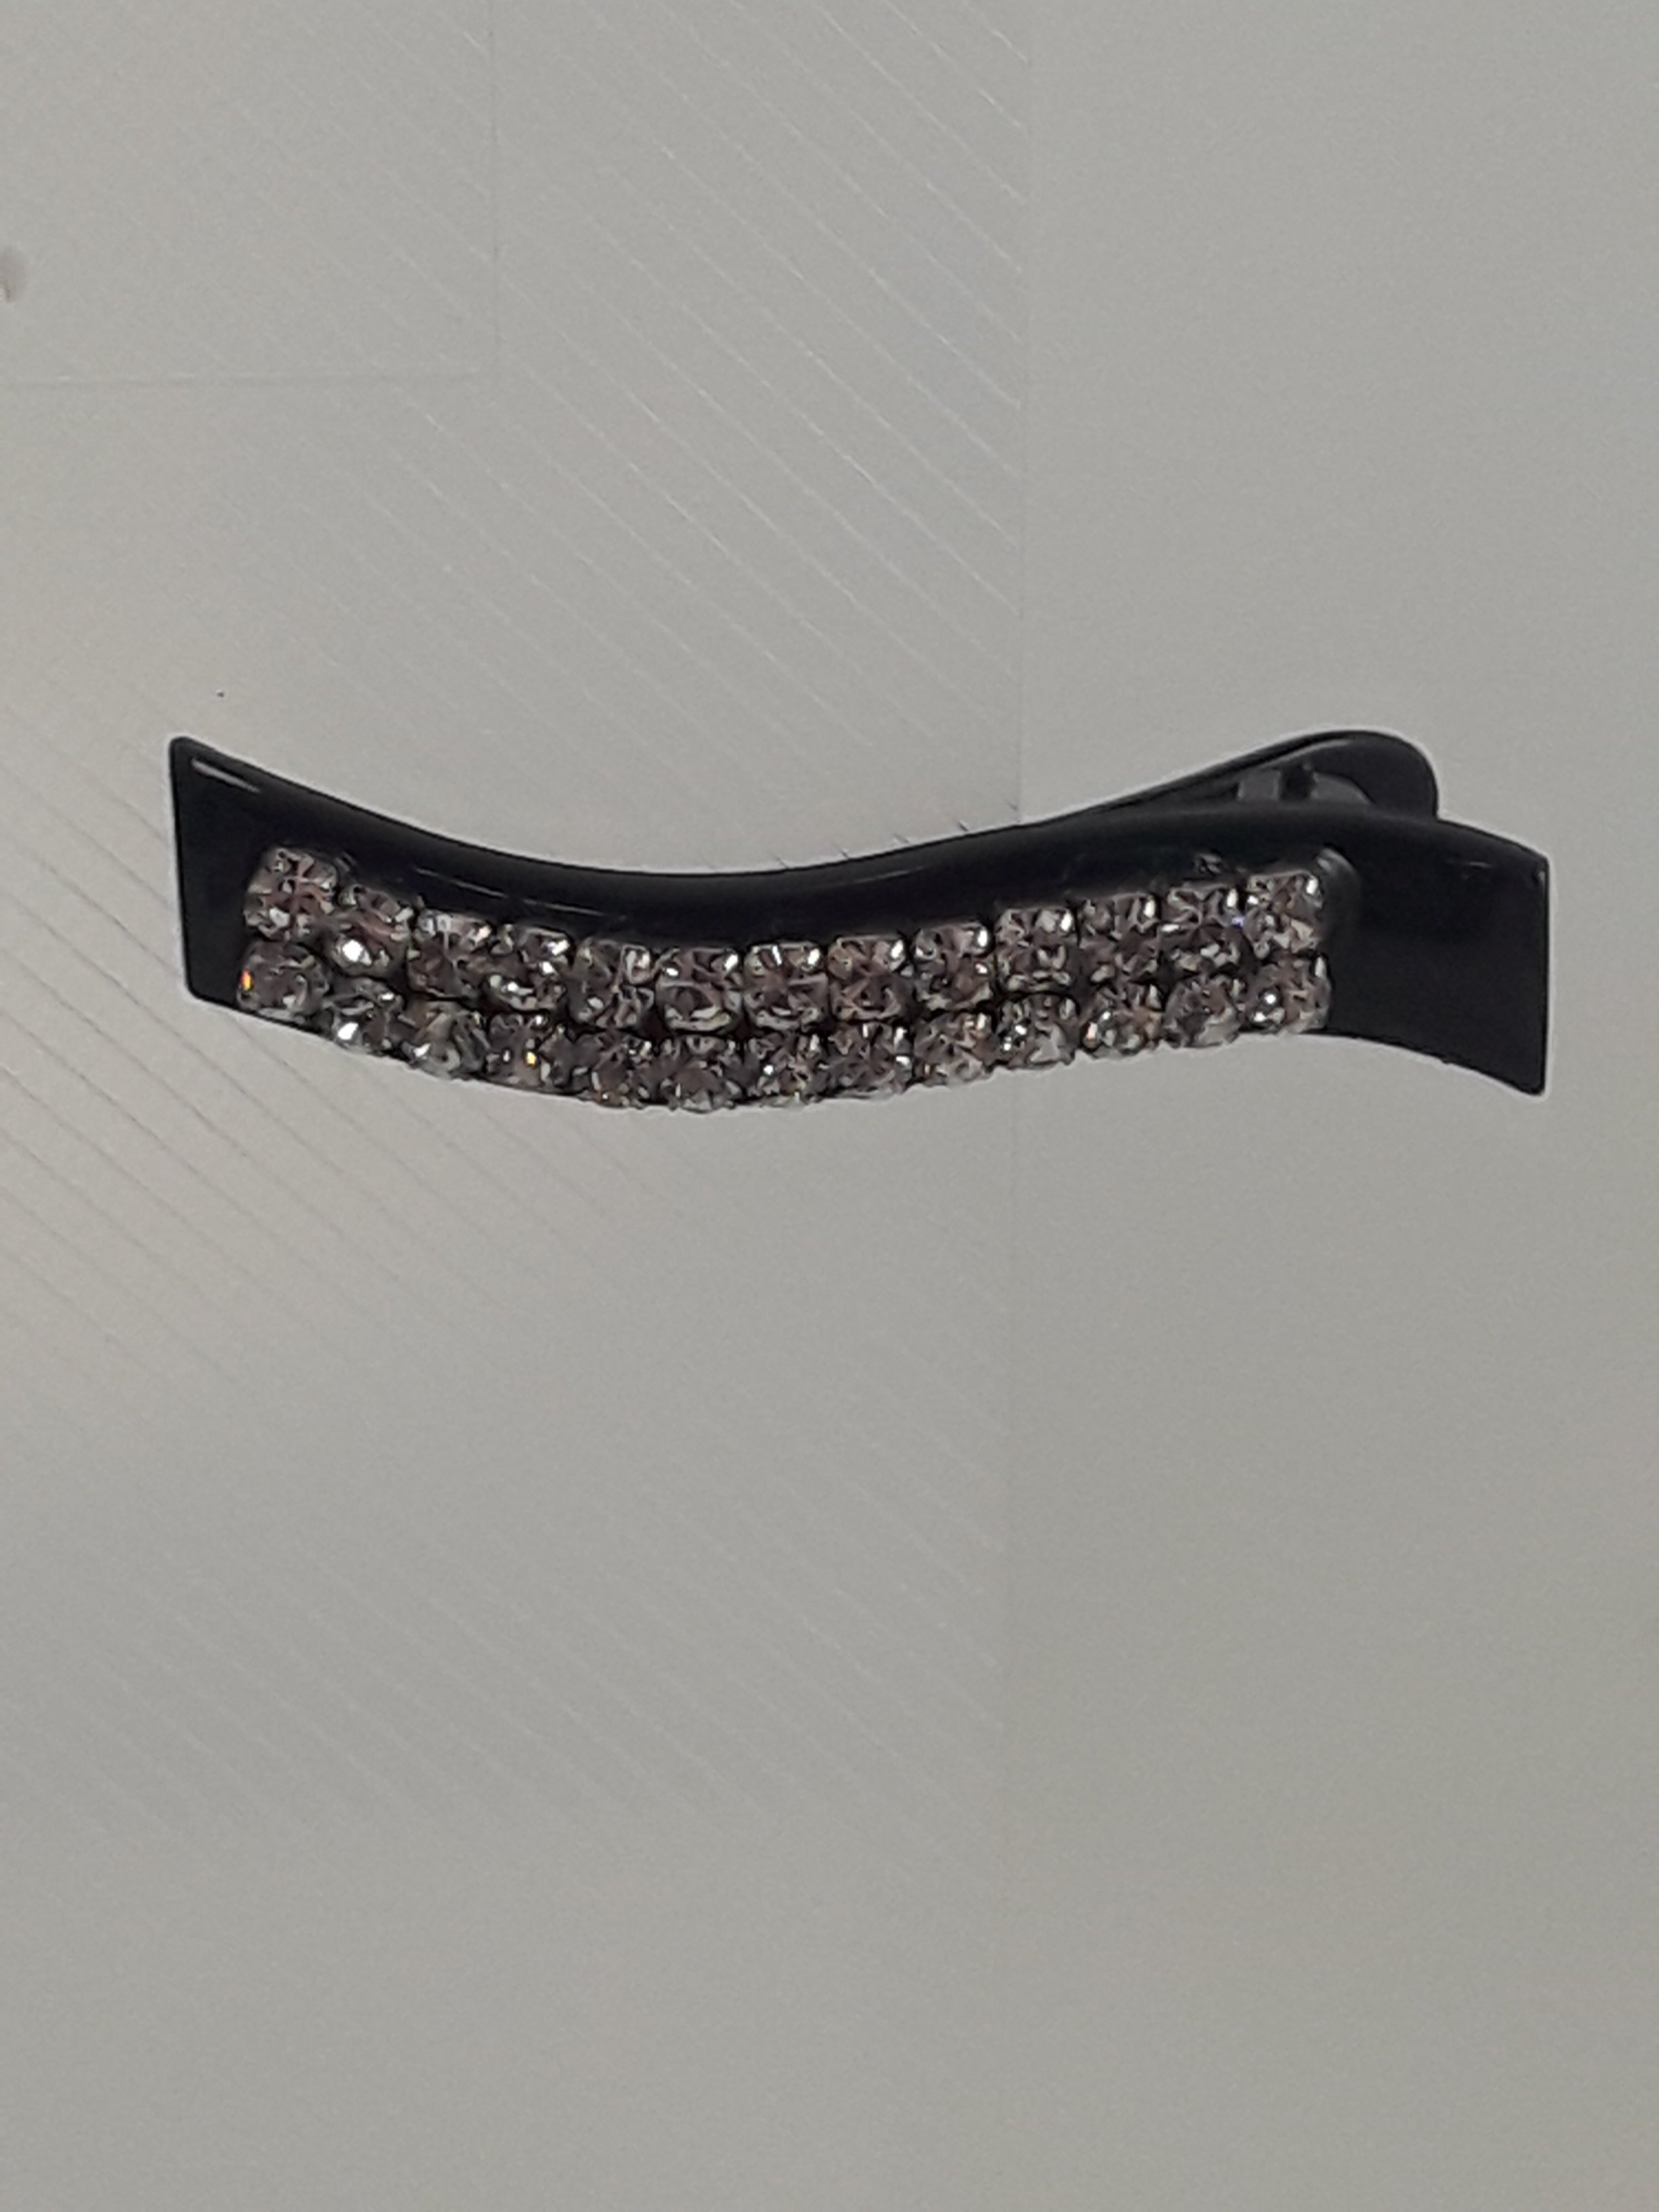 Hair Clip with Double Row of Silver Studs